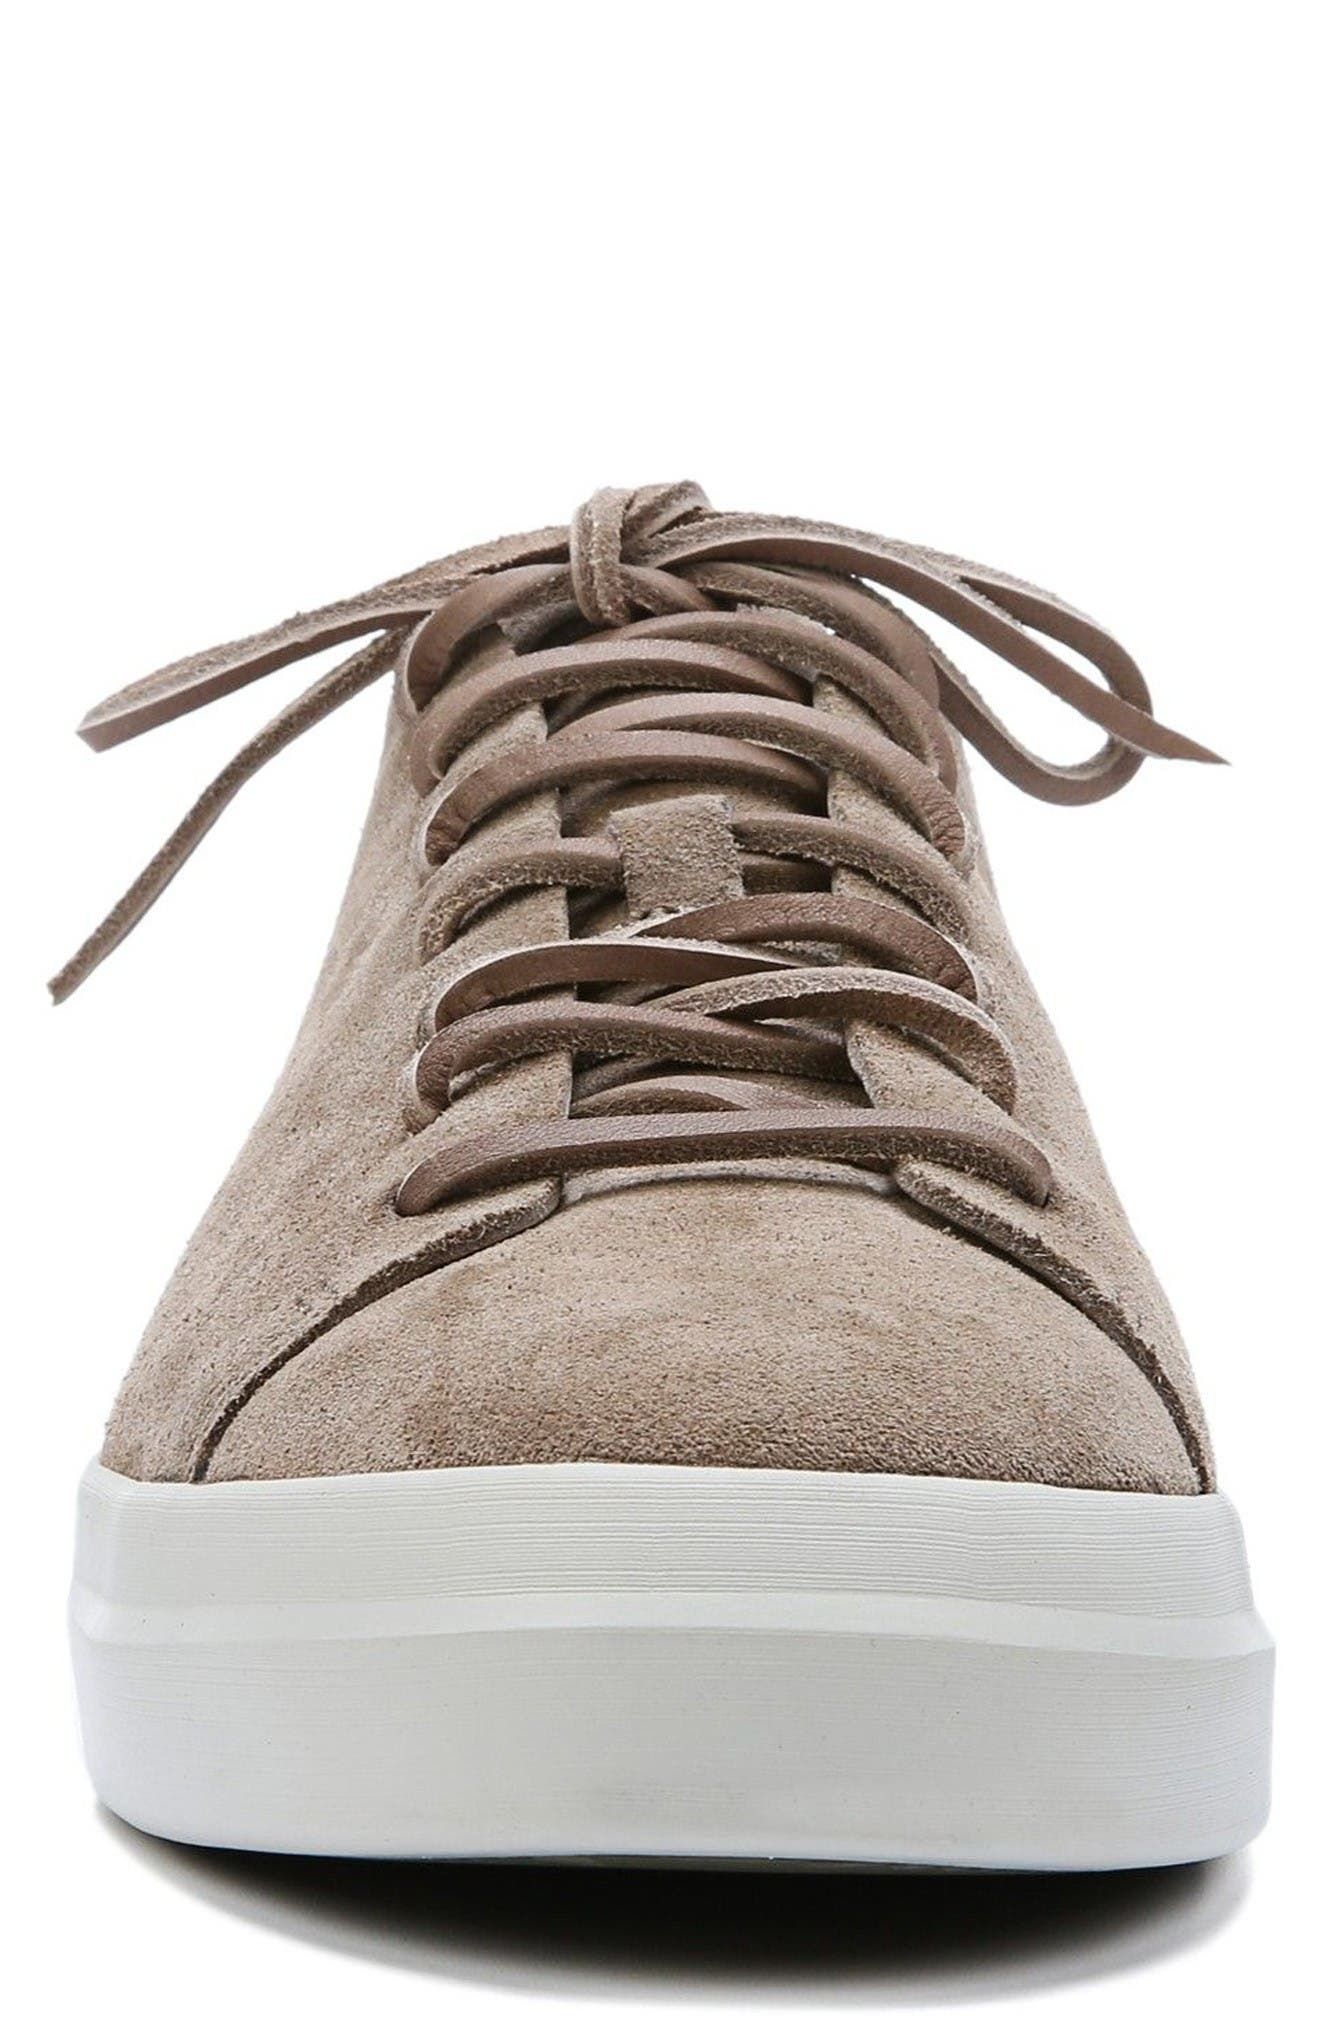 Copeland Sneaker,                             Alternate thumbnail 4, color,                             Flint Tan Suede